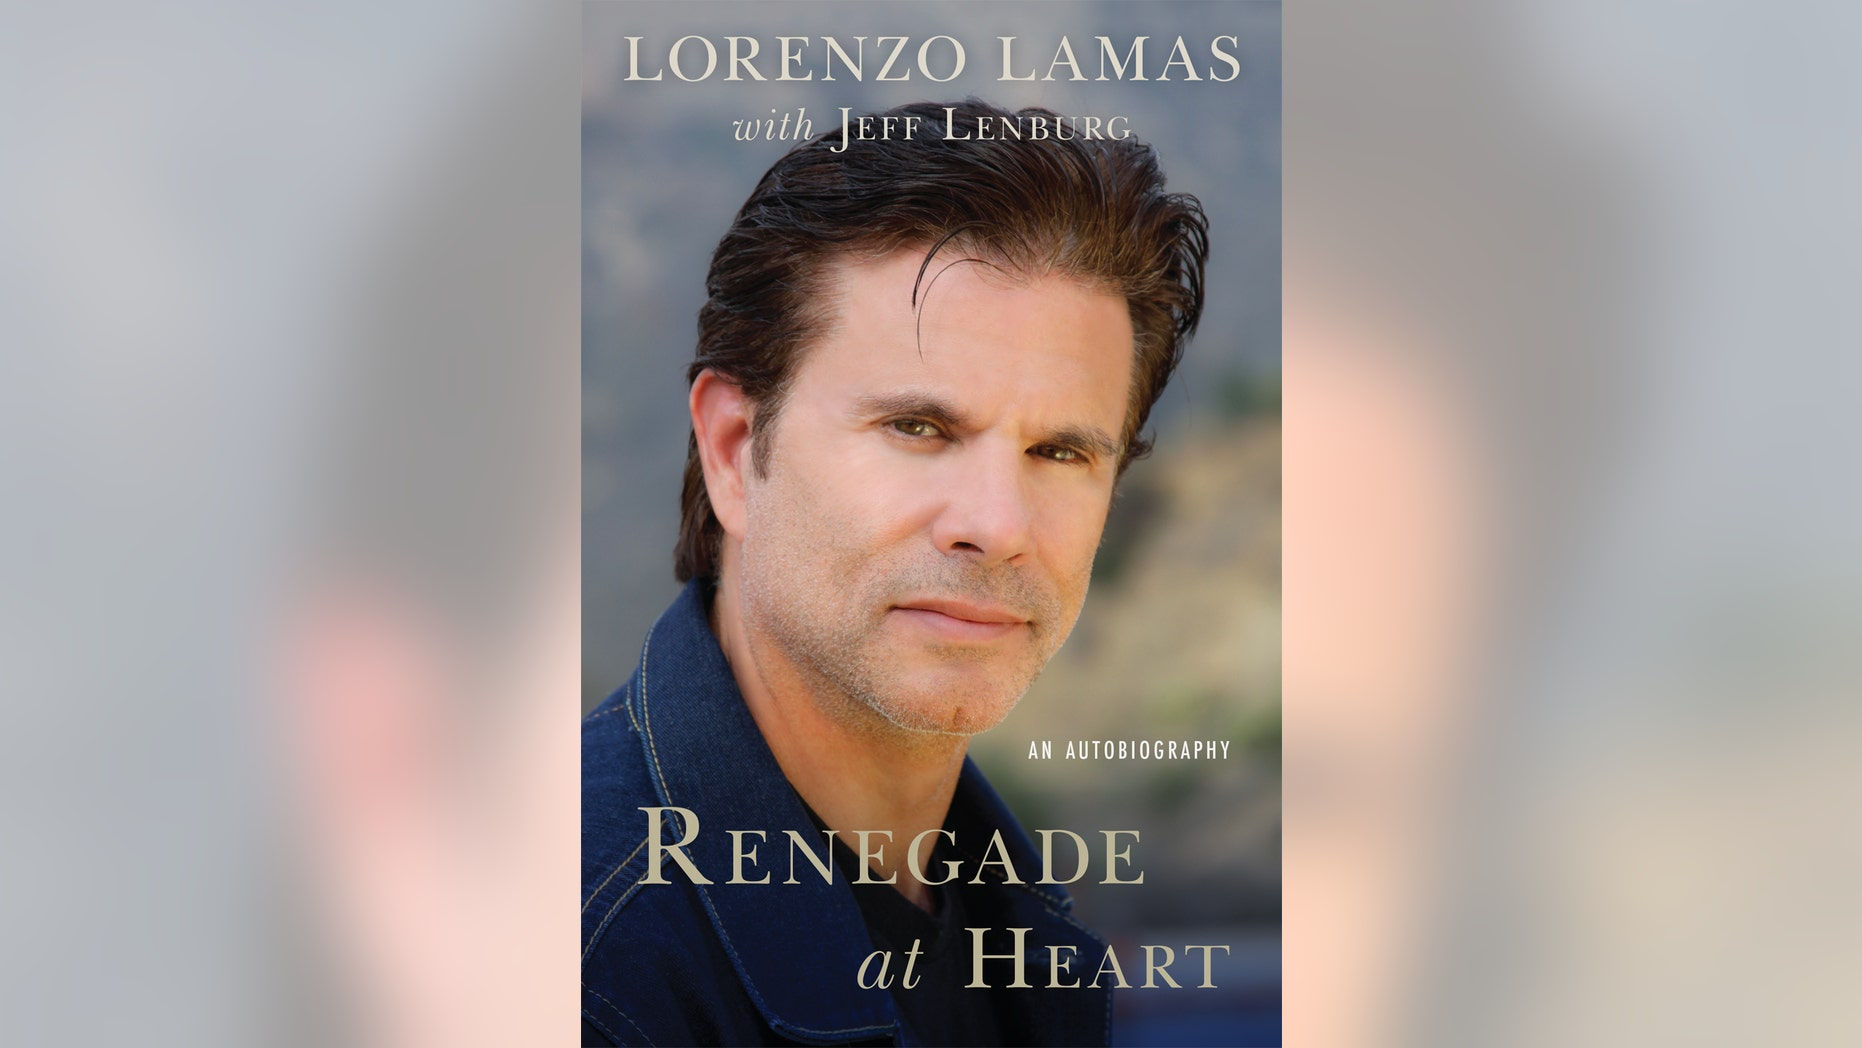 Lorenzo Lamas dishes on his 5 marriages and why he left